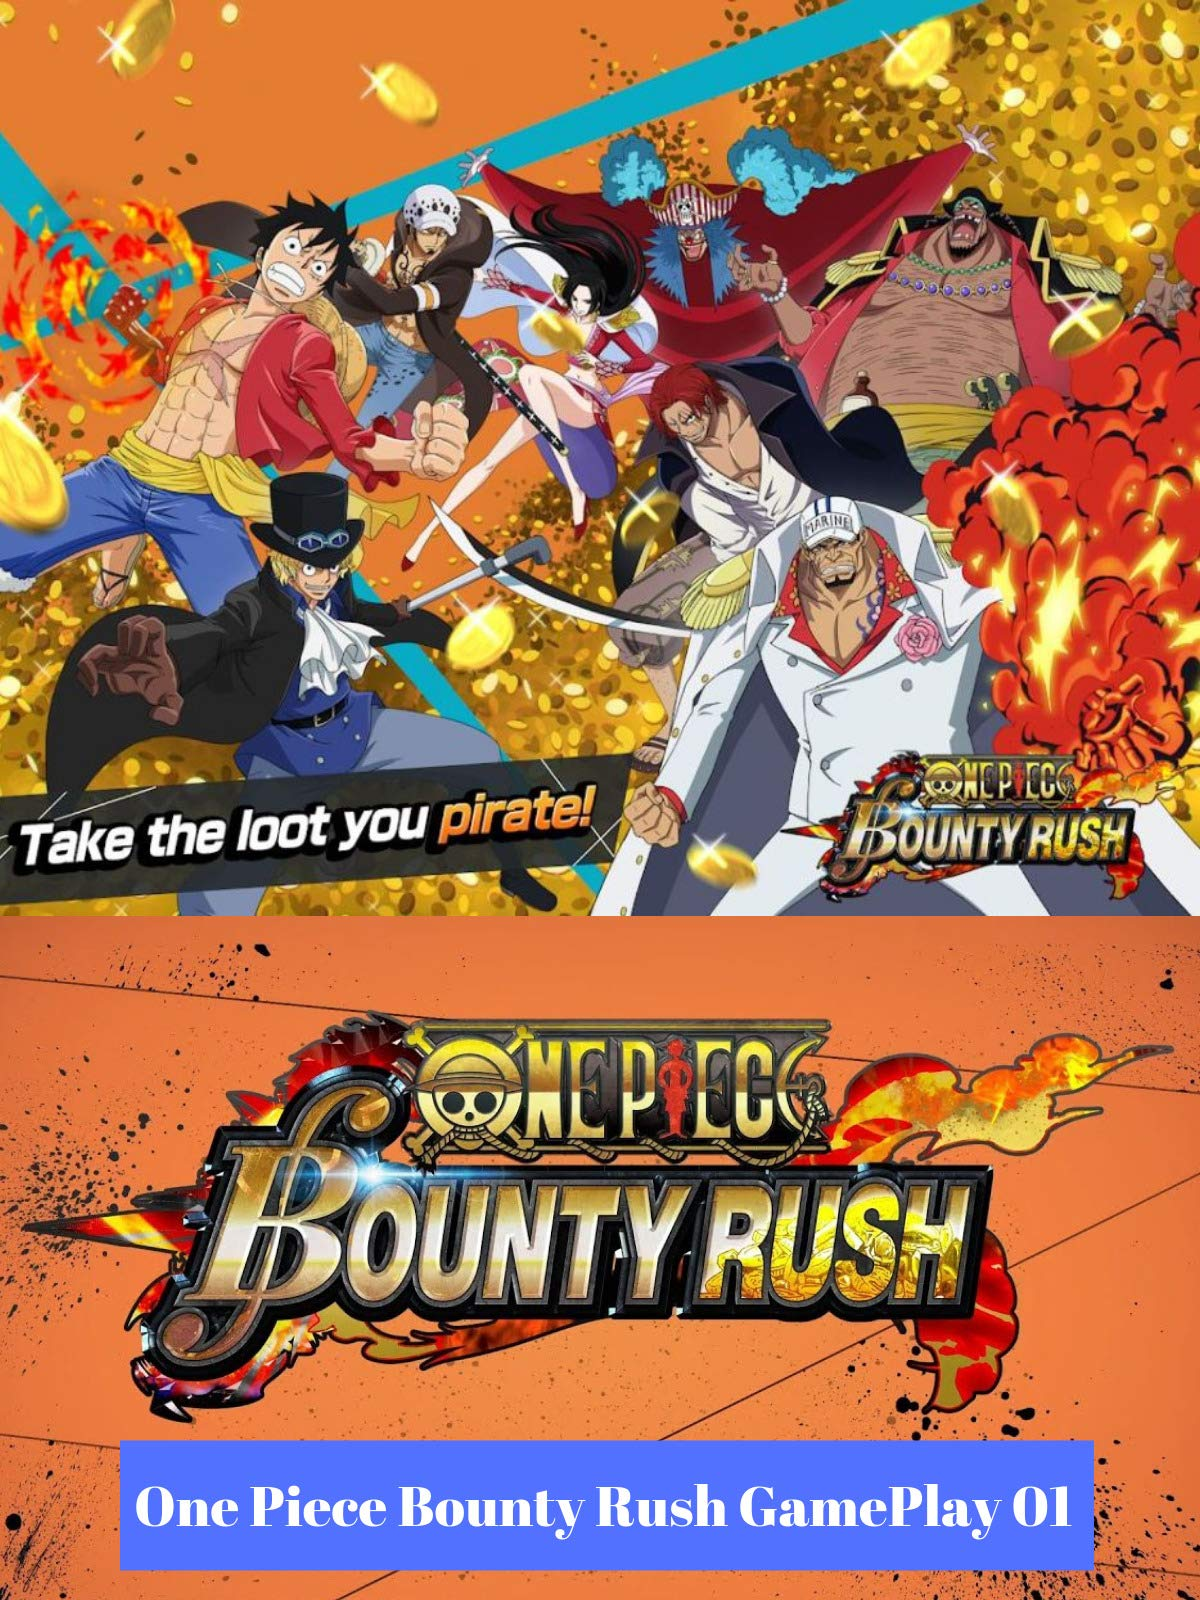 Watch One Piece Bounty Rush Gameplay 01 | Prime Video